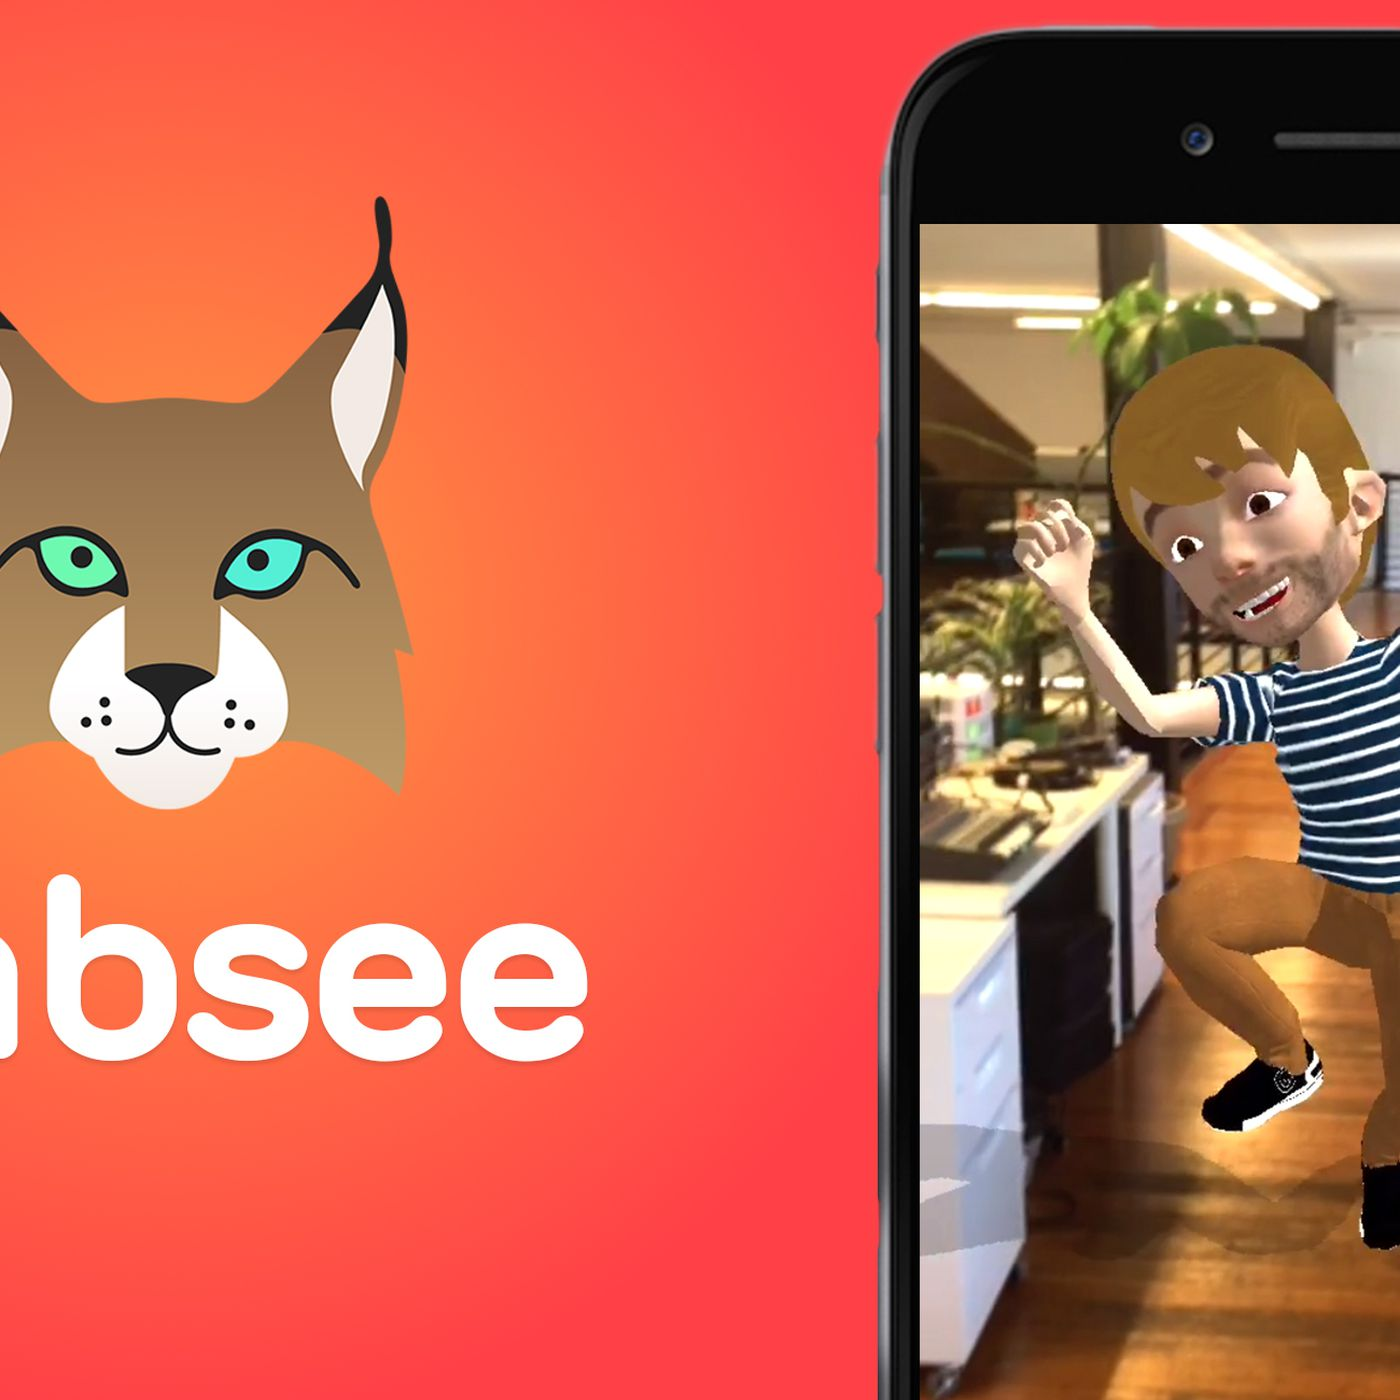 e29a89d4025 Gabsee's charming 3D avatars are the Bitmoji of the future - The Verge